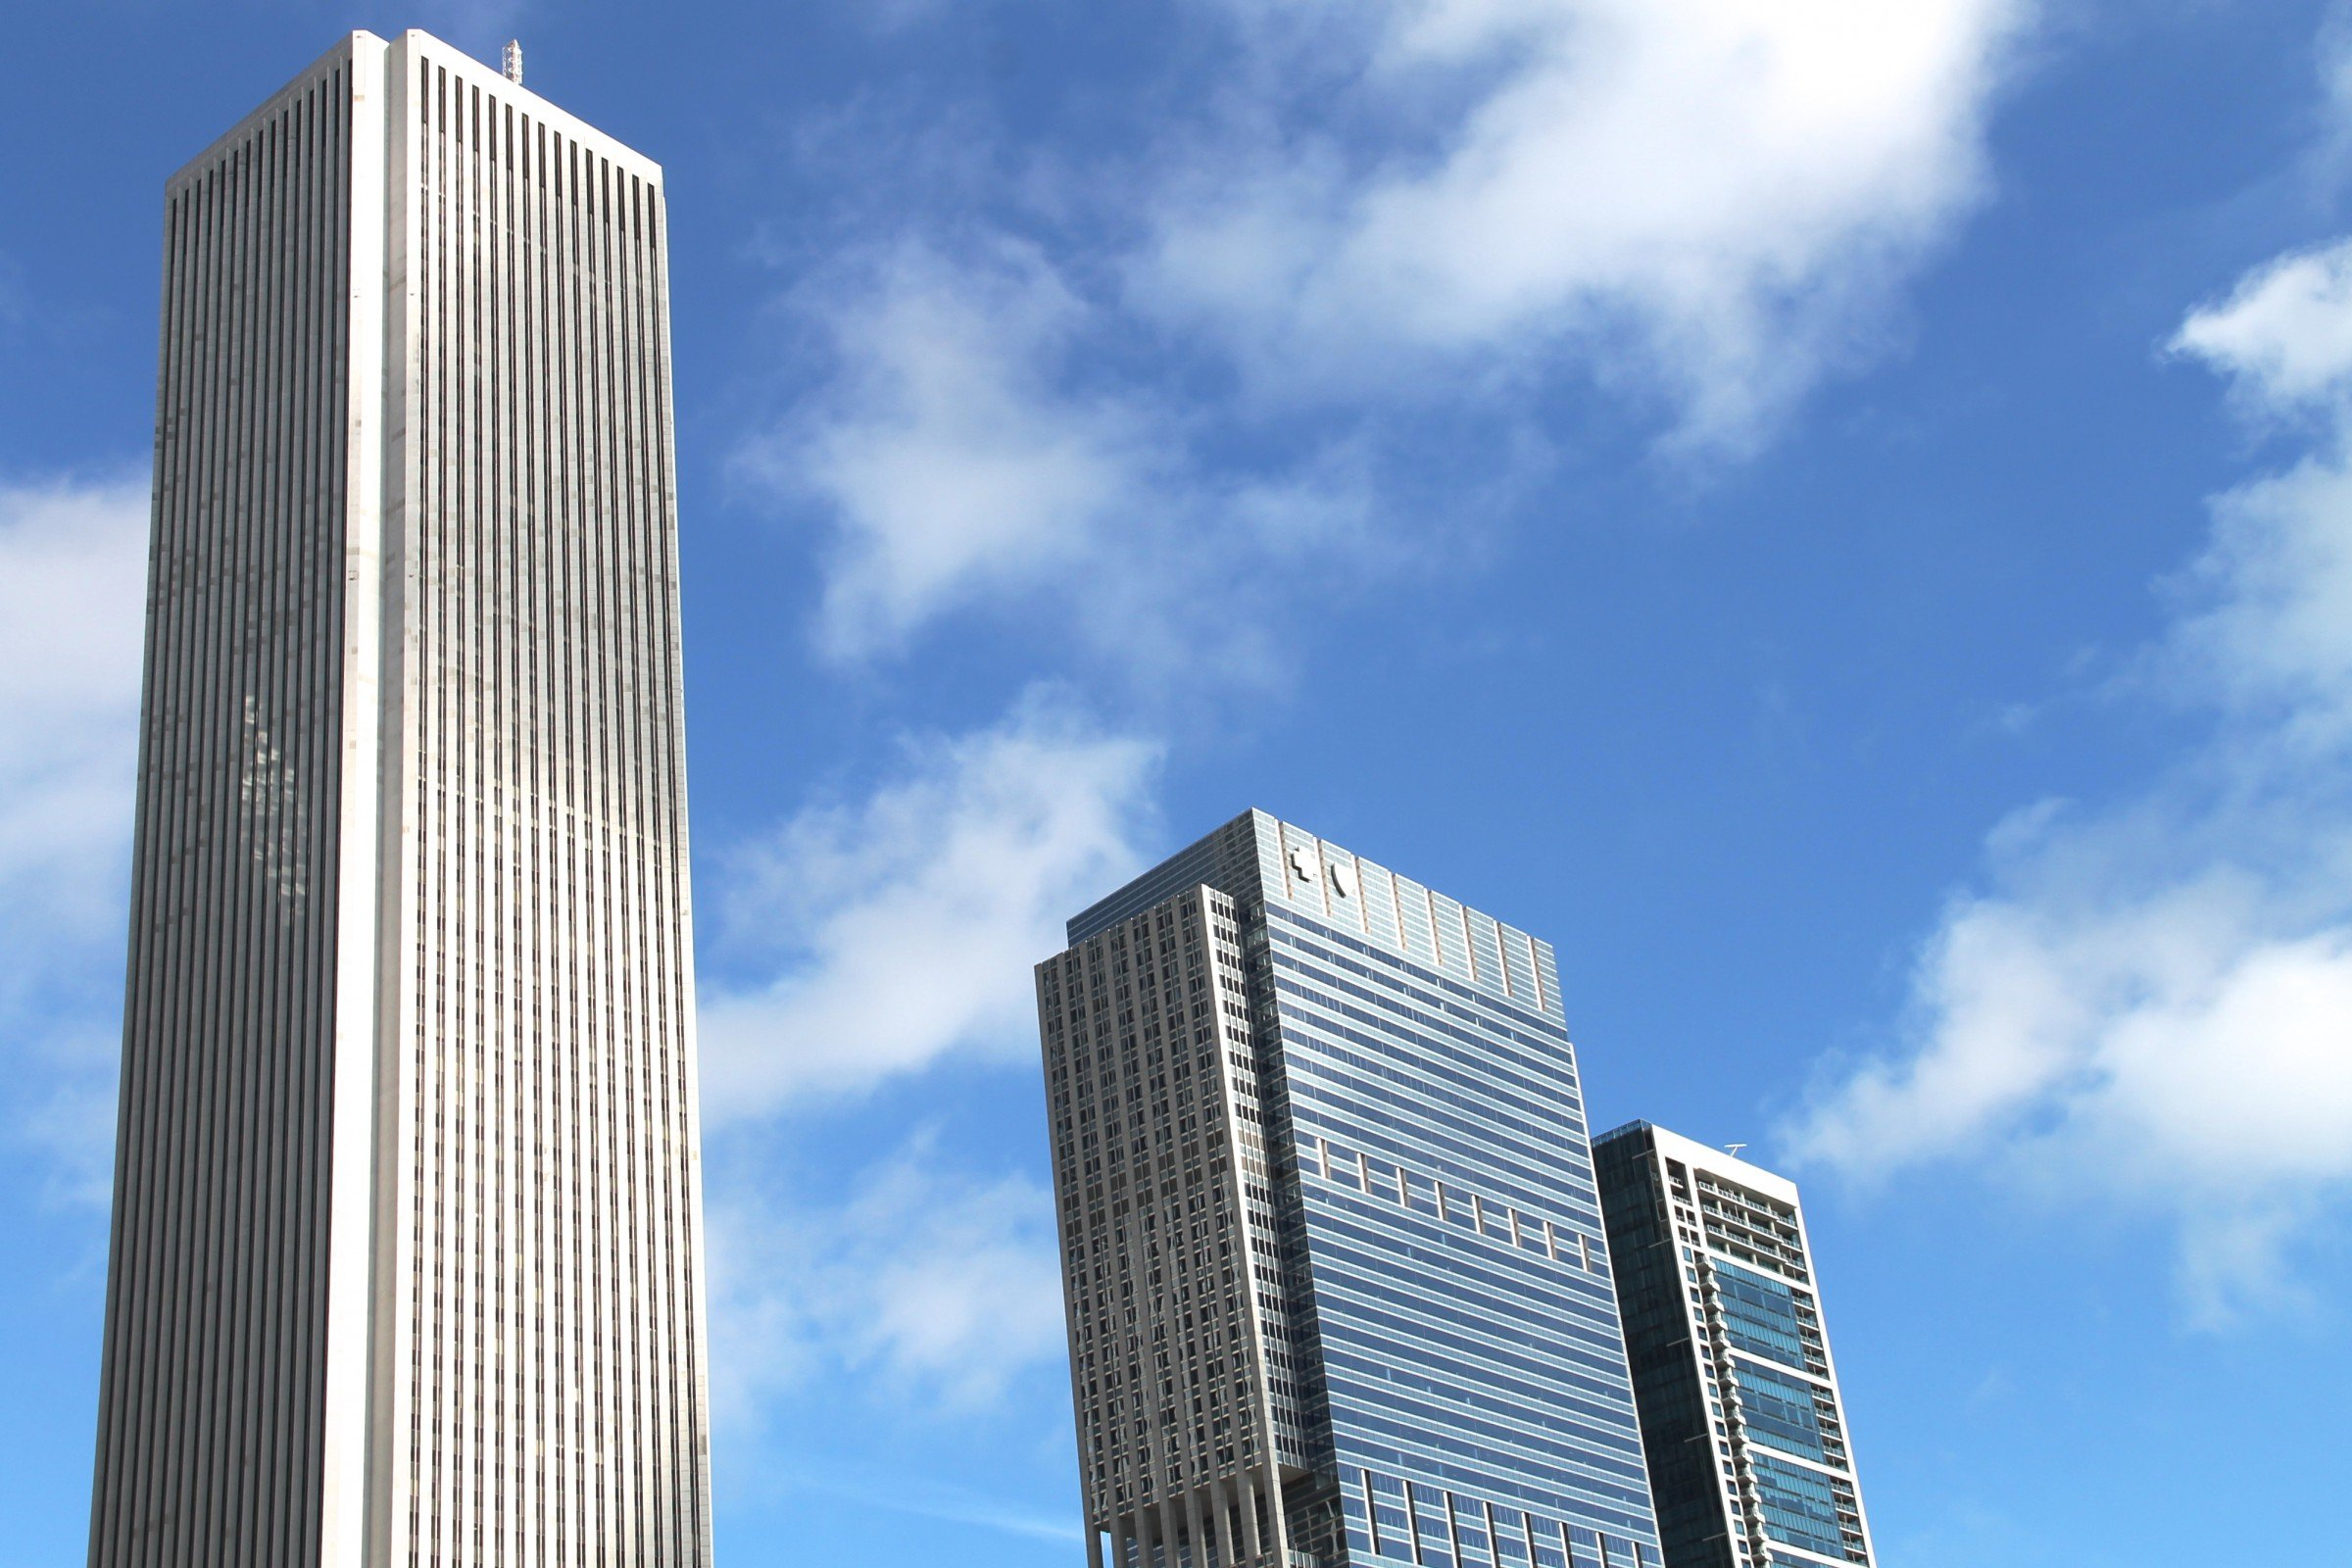 Free Stock Photo of 3 Tall Buildings in Sky with Clouds